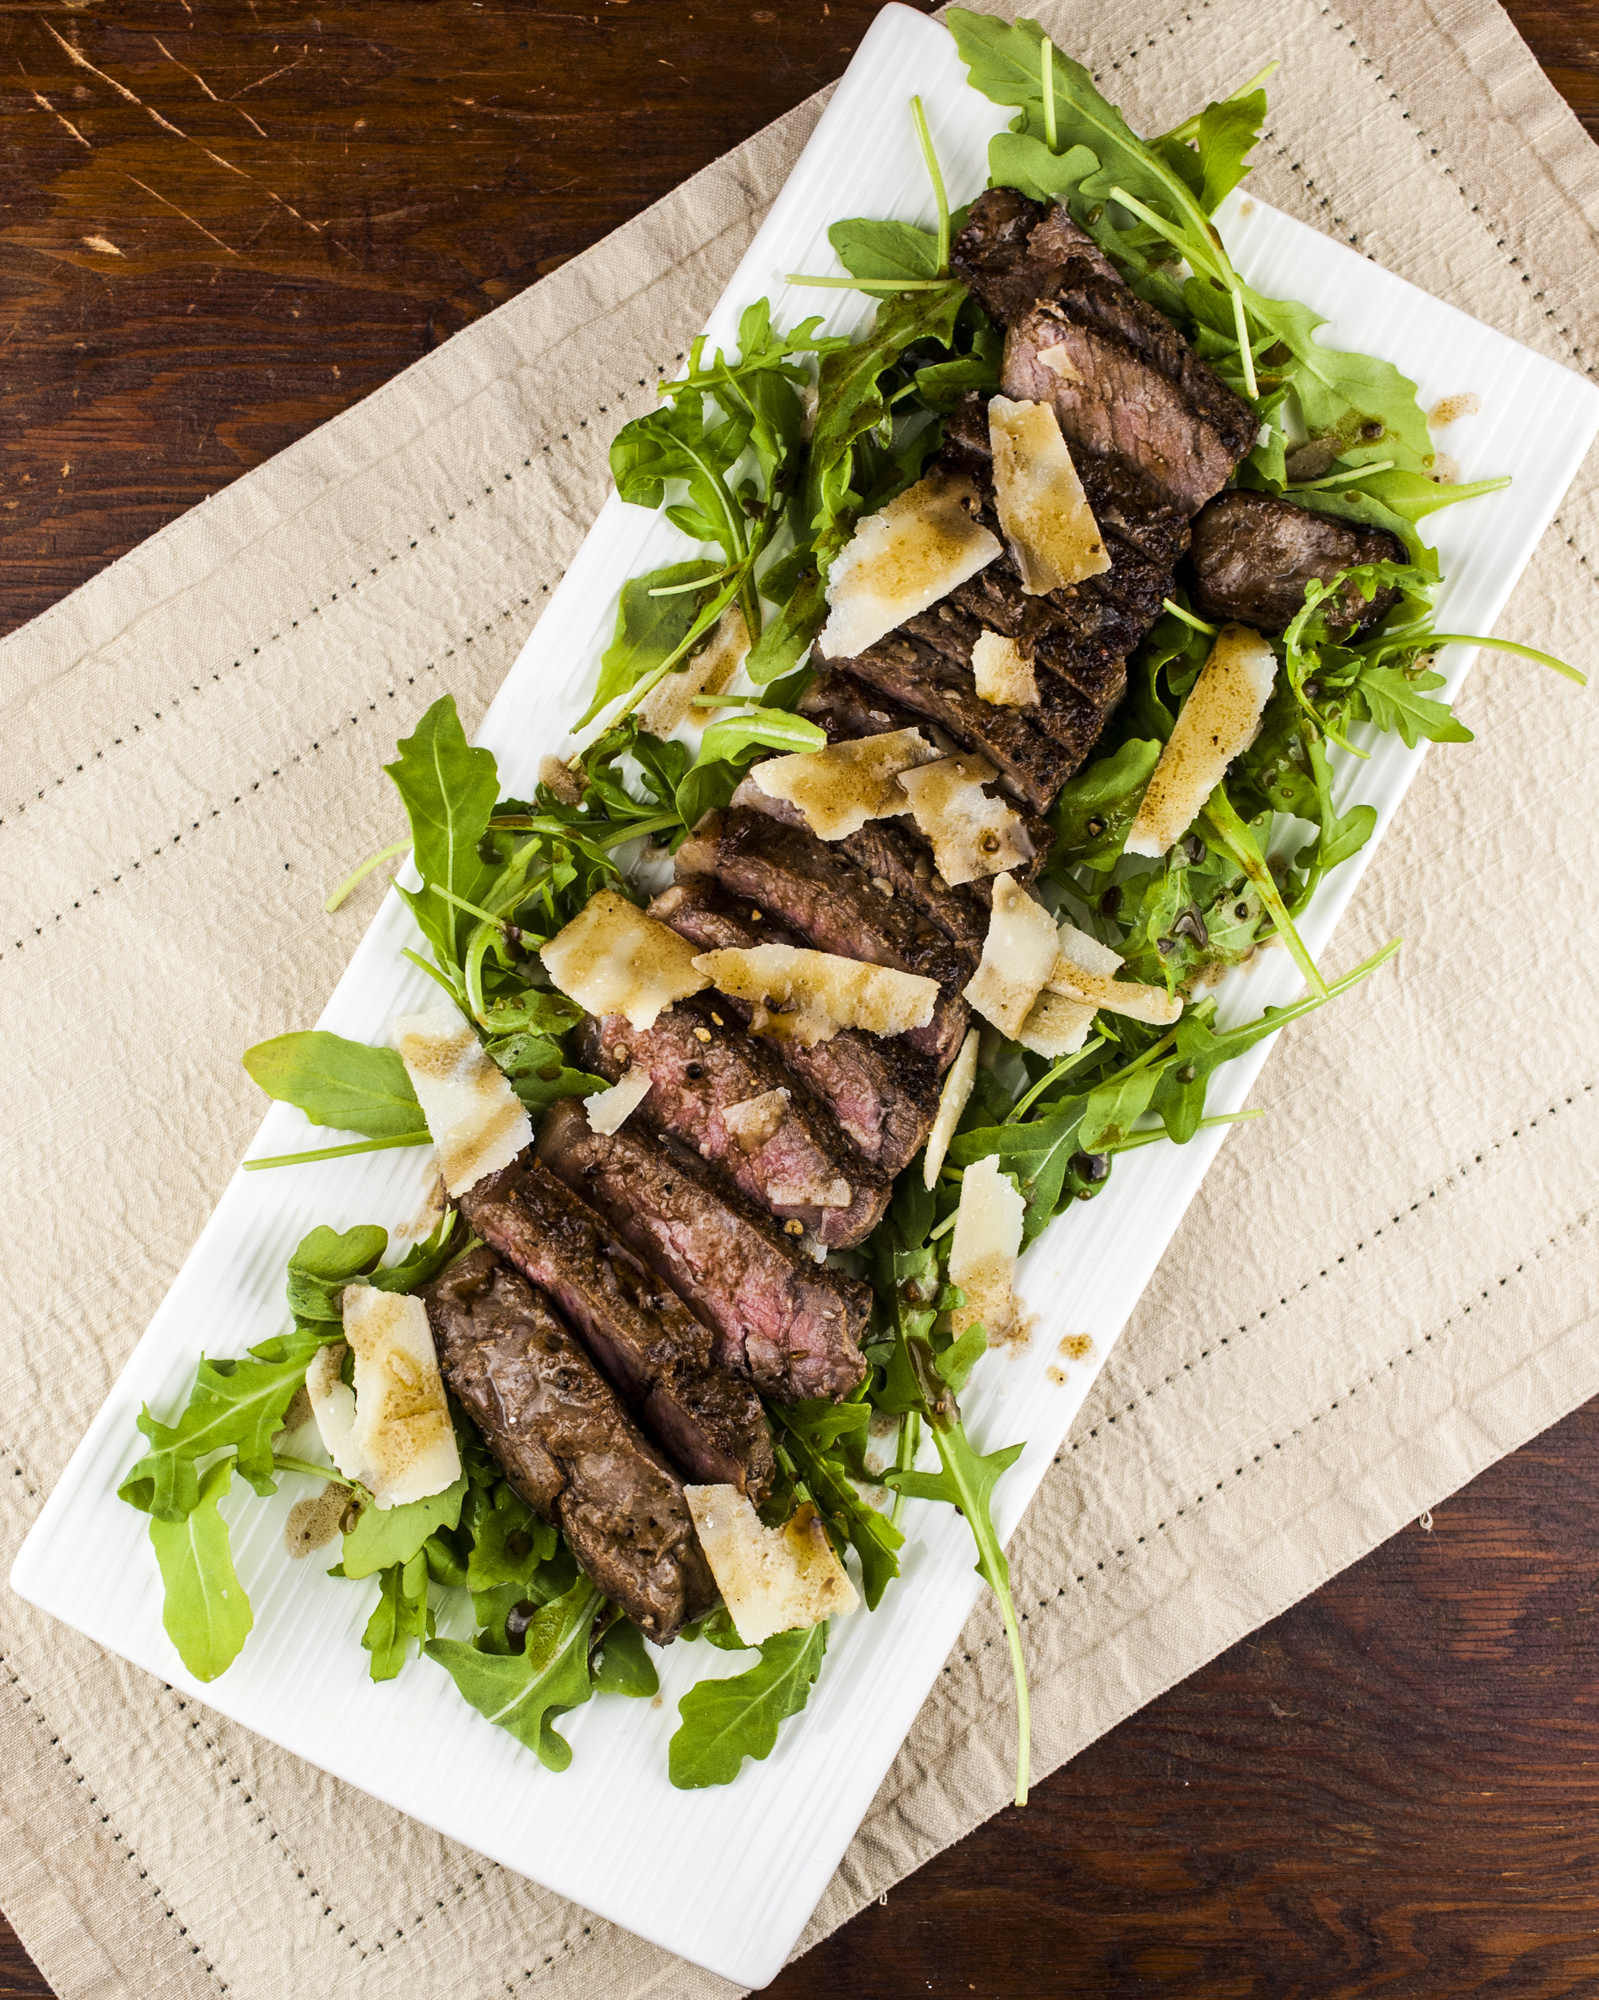 Tagliata on arugula with shaved parmesan and balsamic rosemary dressing